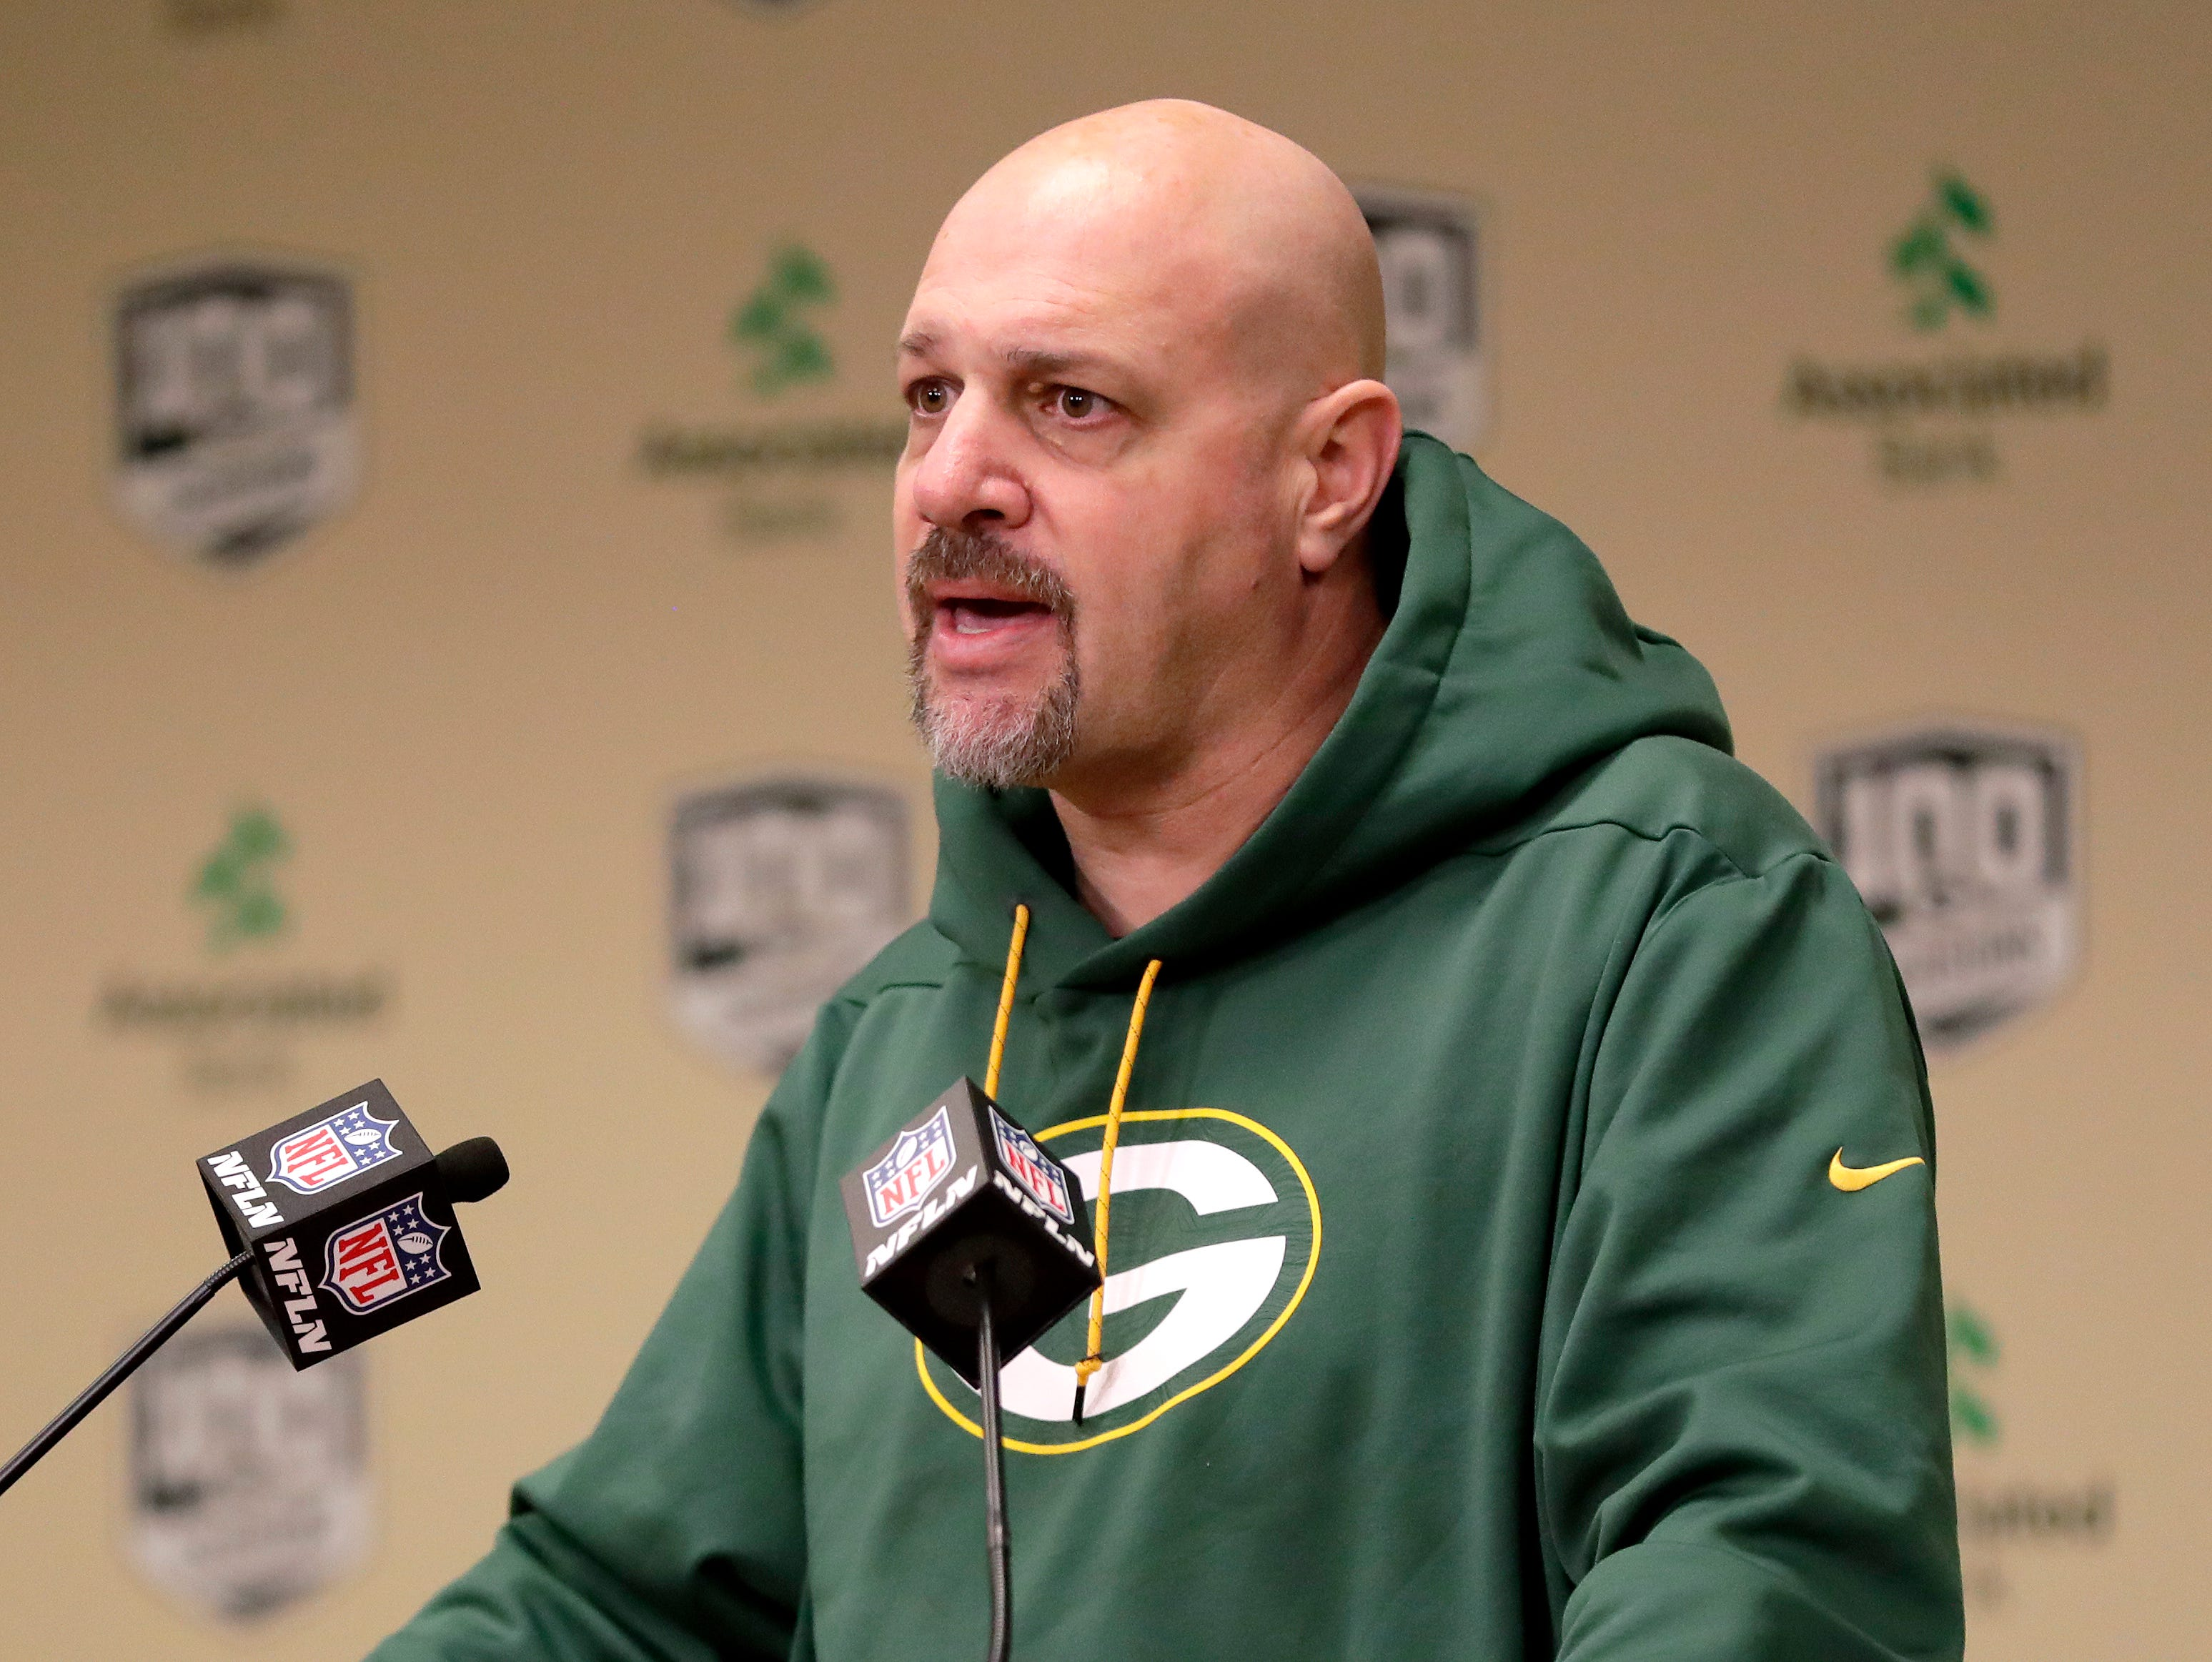 Green Bay Packers defensive coordinator Mike Pettine speaks to media on Feb. 18, 2019, at Lambeau Field in Green Bay, Wis.